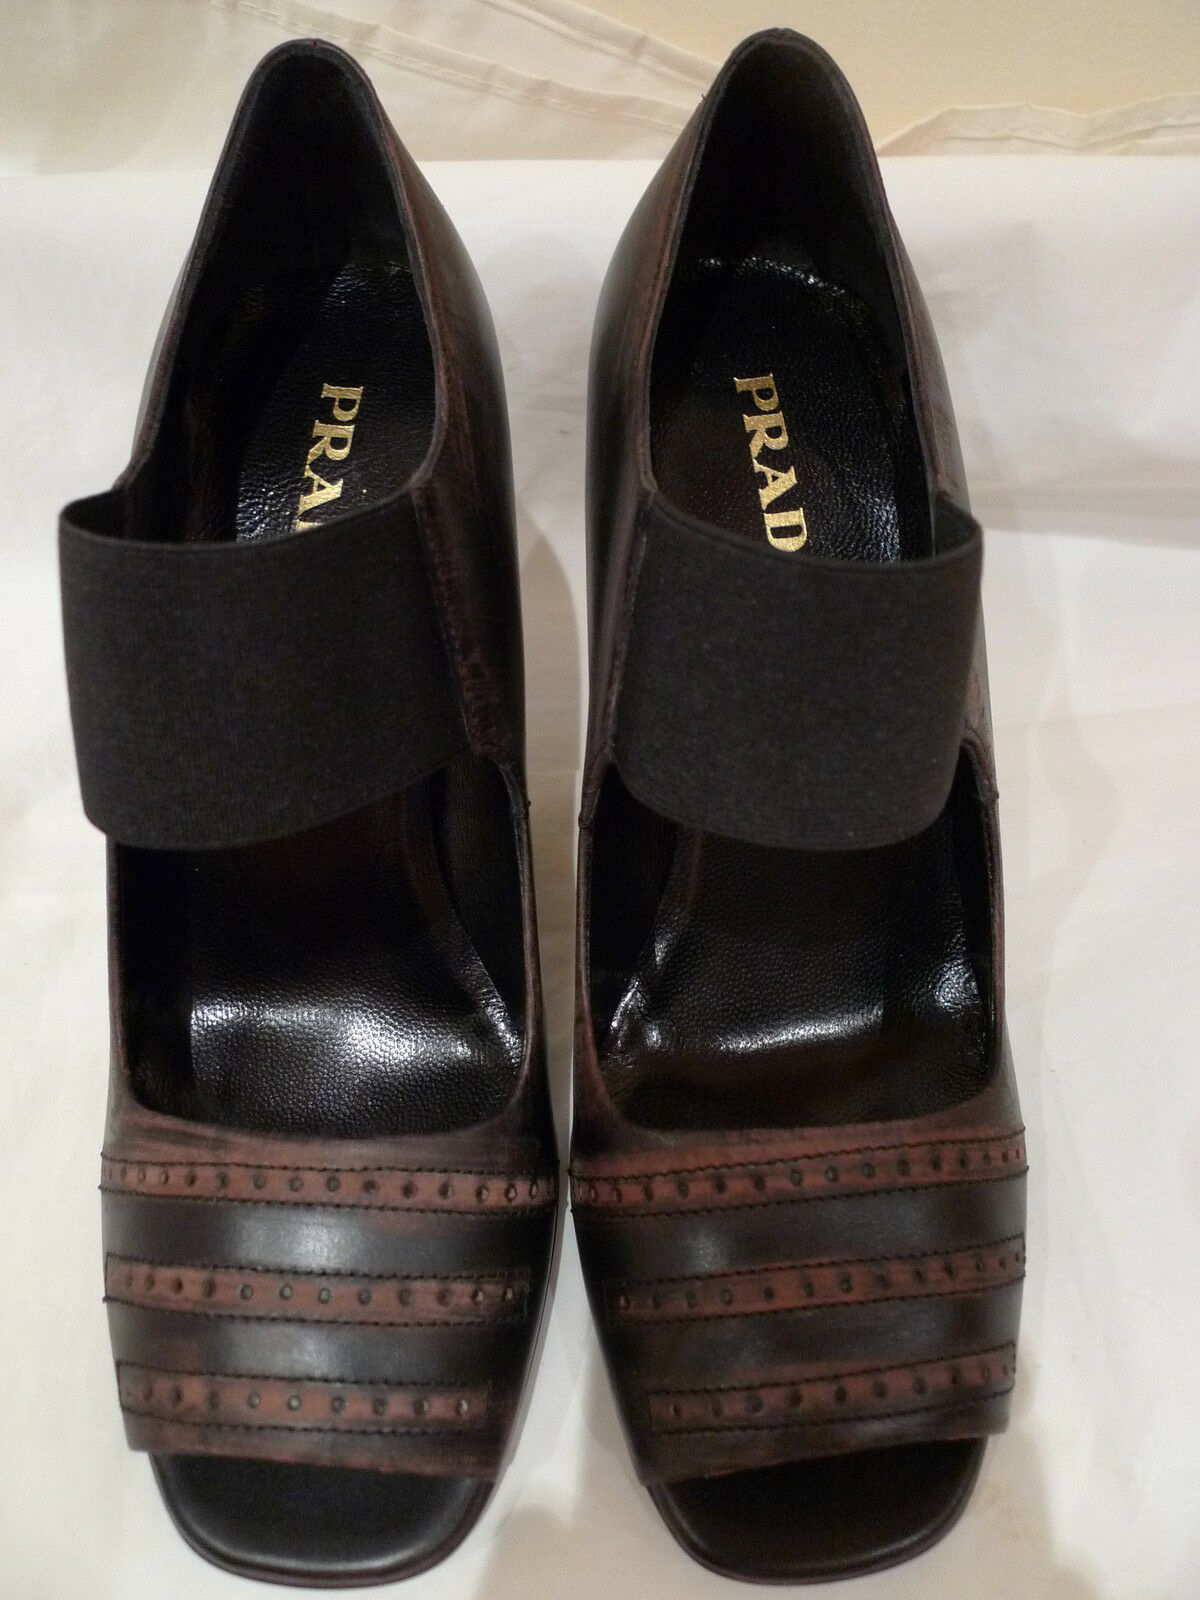 PRADA OPEN TOE SEXY SHOES AUTHENTIC  ITALY SIZE 37/7